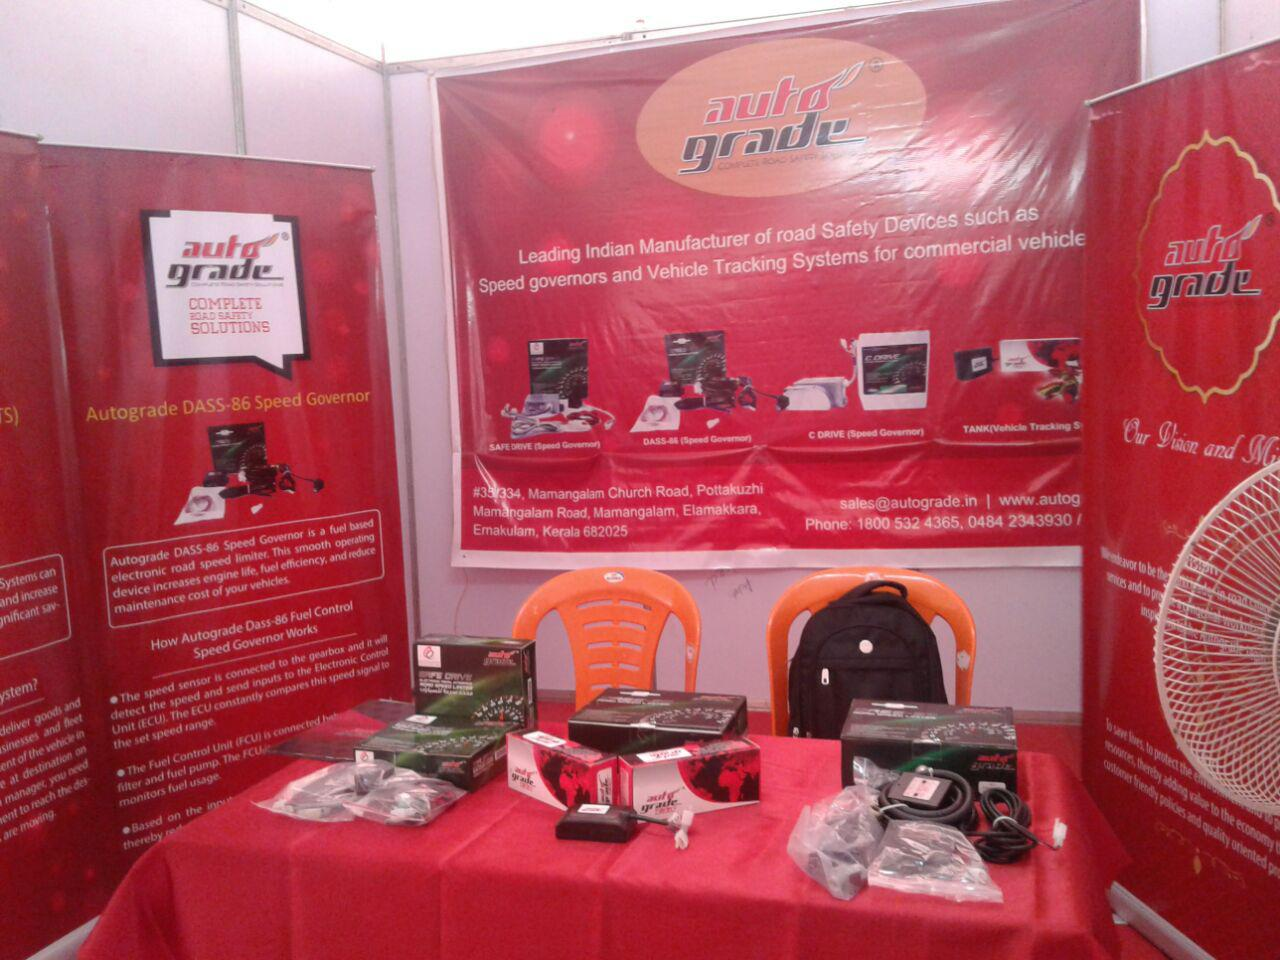 Autograde's stall displaying speed governors at a road safety event in Thiruvananthapuram.